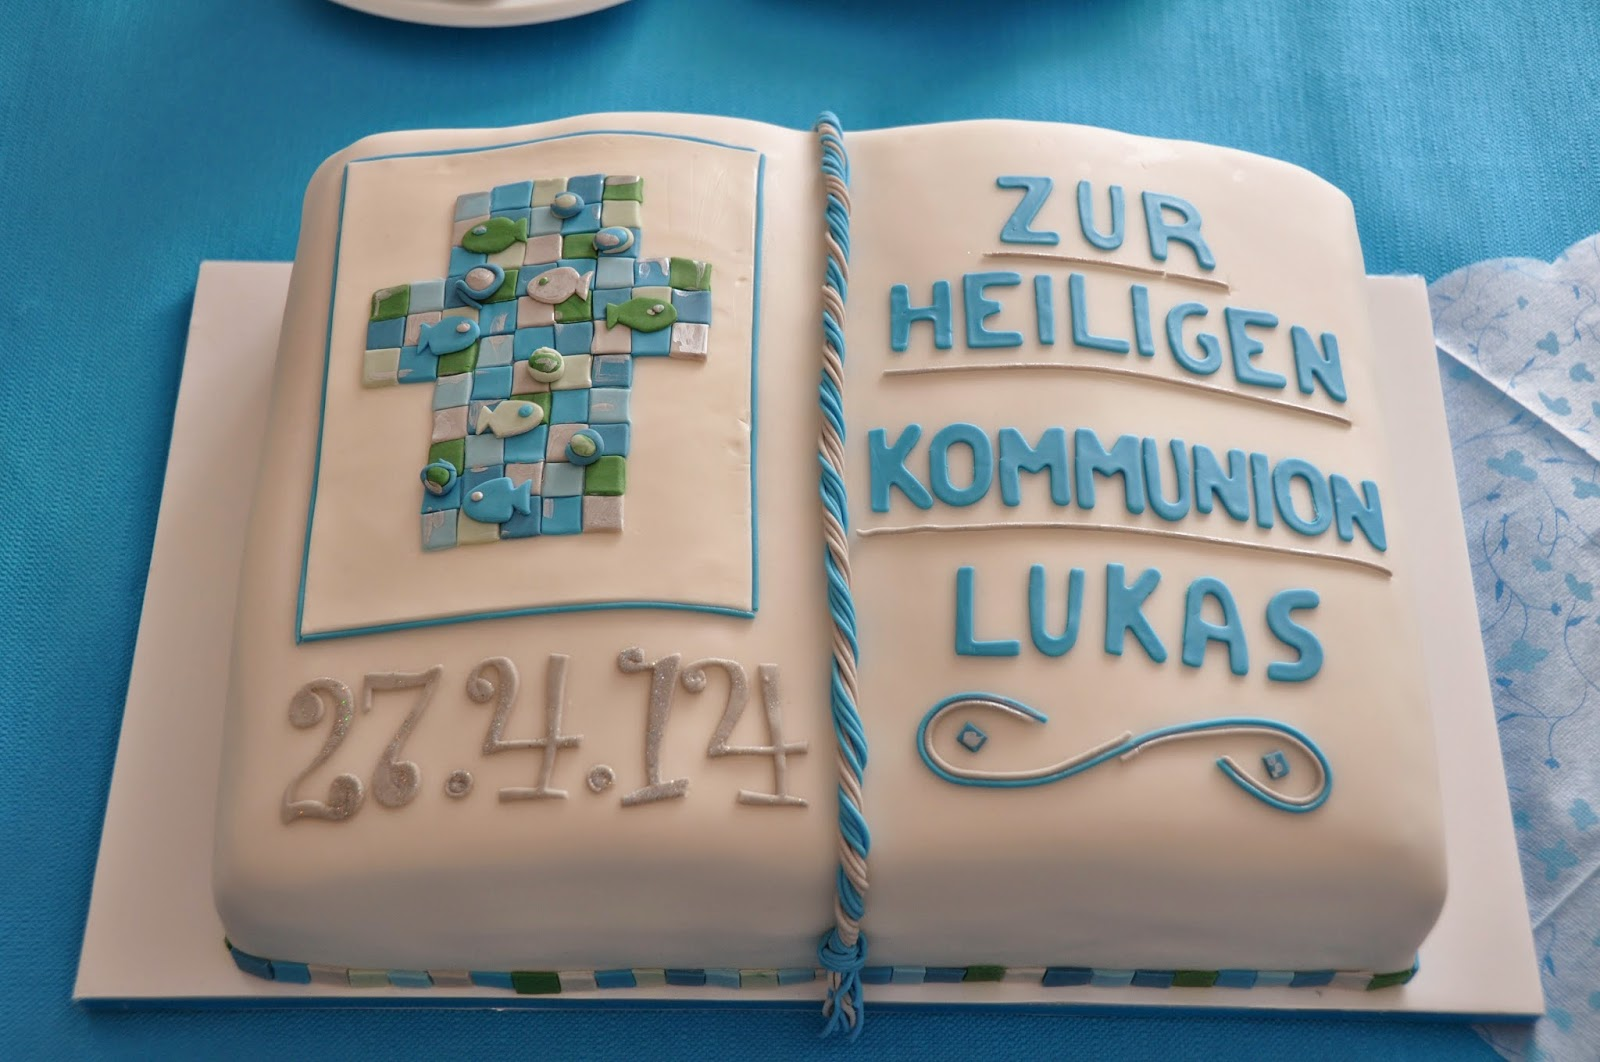 Cakez ... Creations with heART: Kommunion